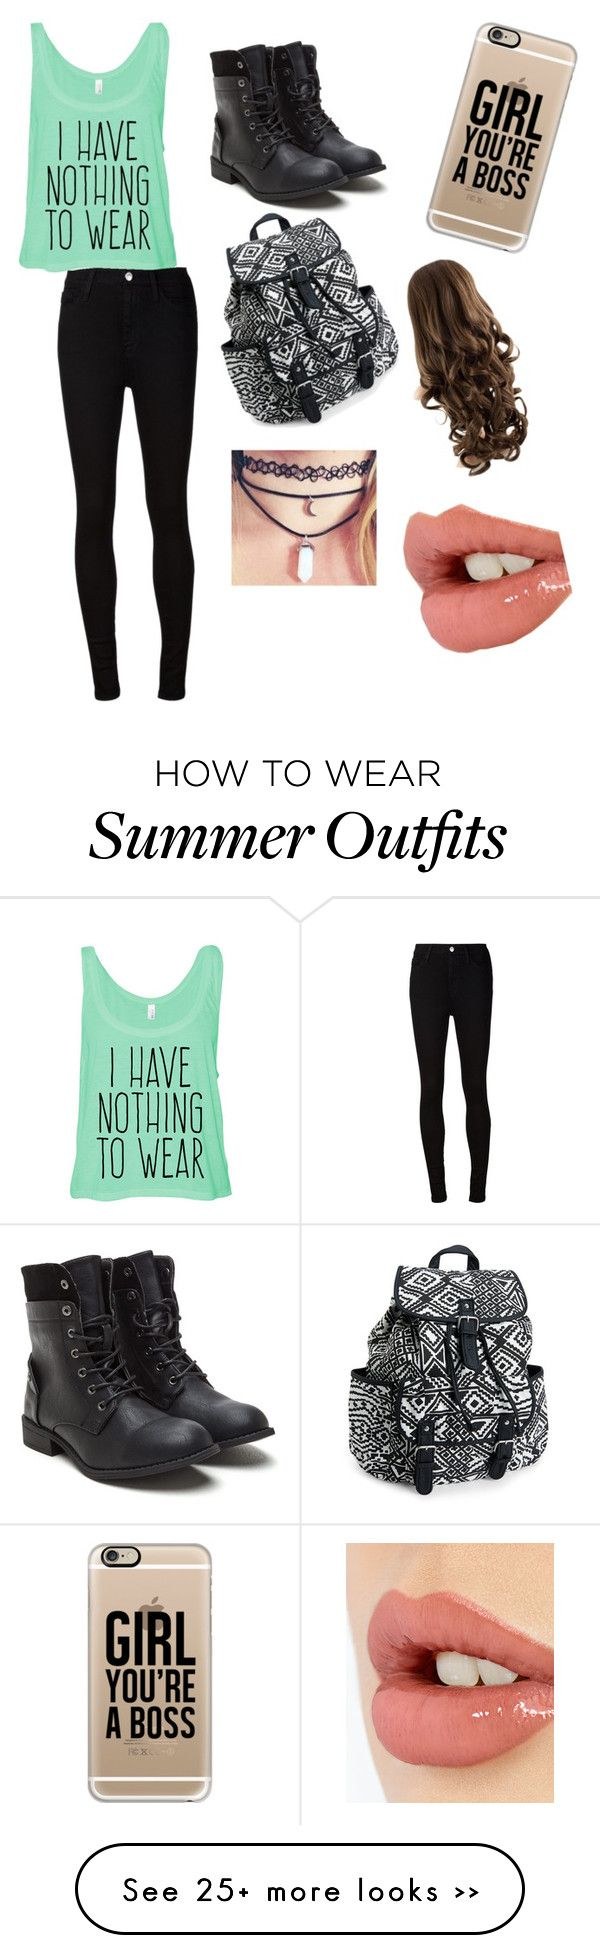 """Untitled #36"" by valalcala on Polyvore featuring moda, AG Adriano Goldschmied, Aéropostale, Casetify y Charlotte Tilbury"